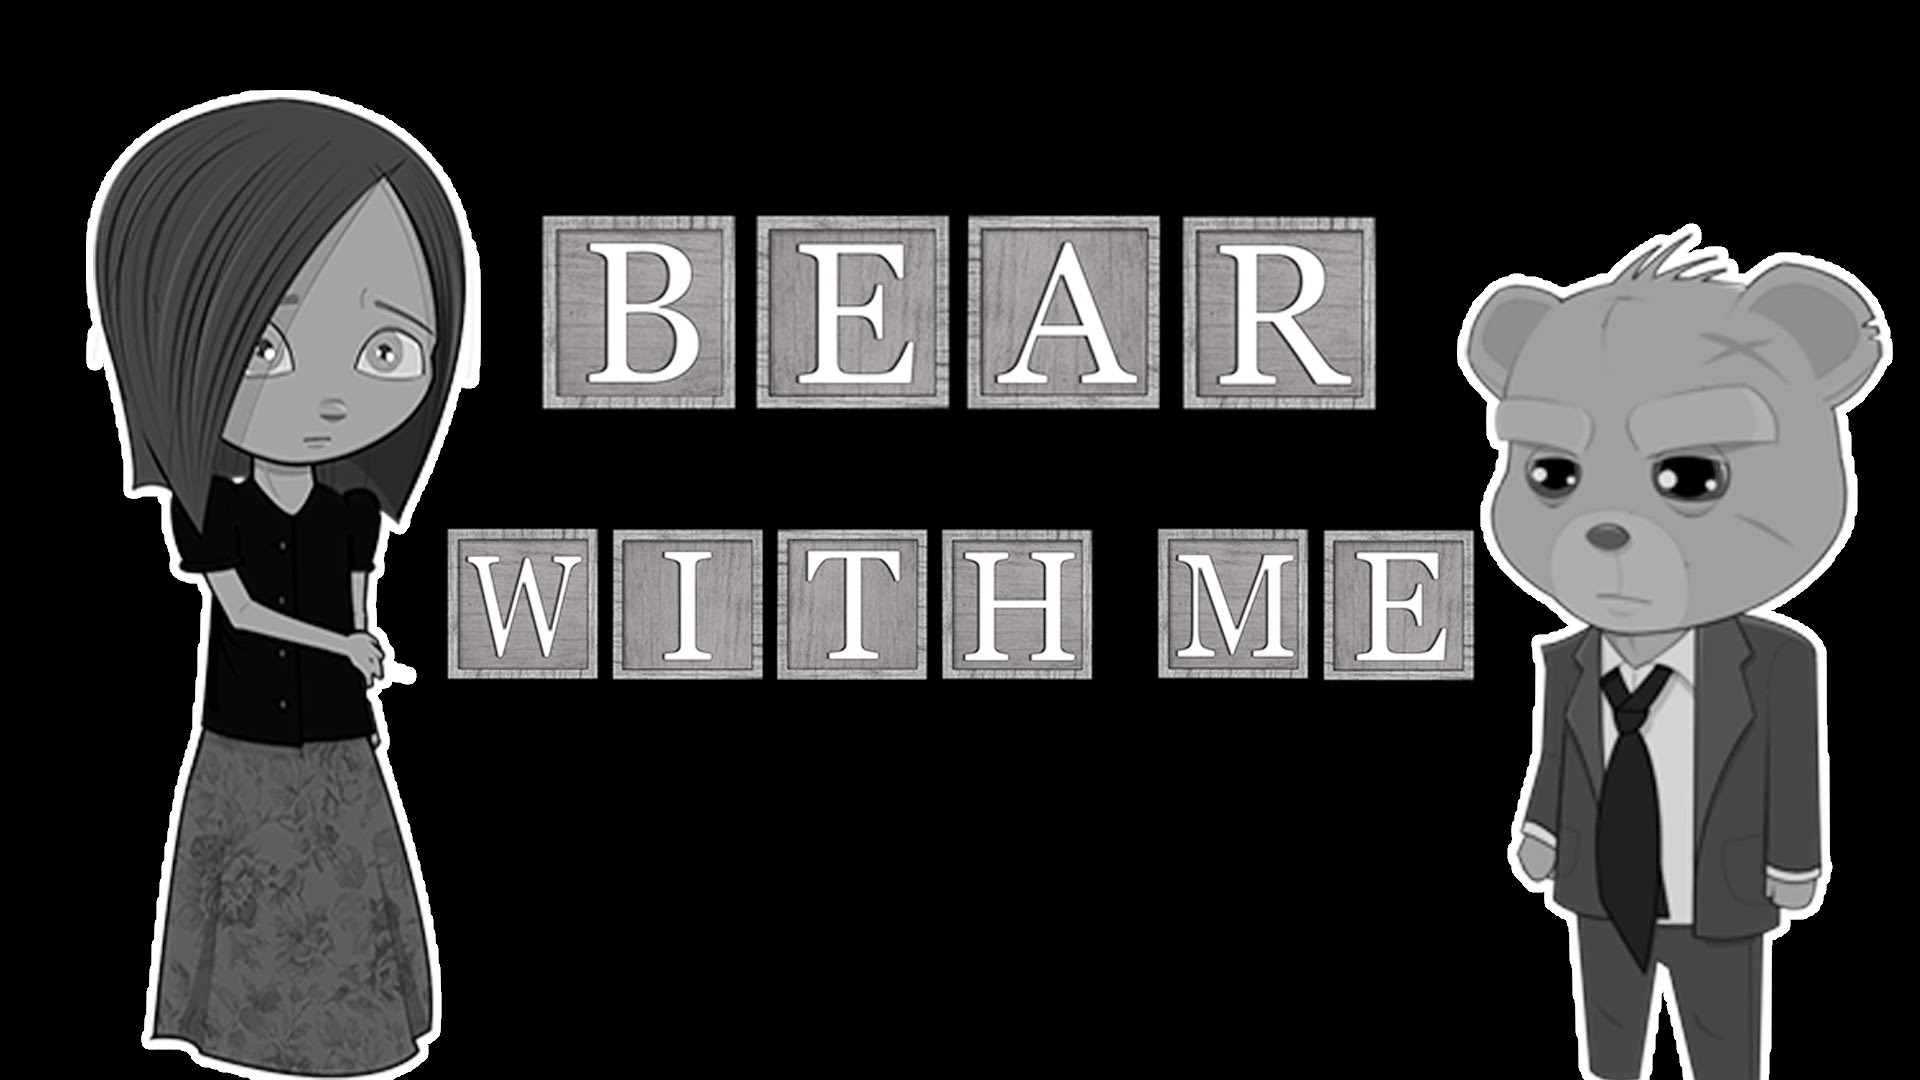 Bear With Me Review